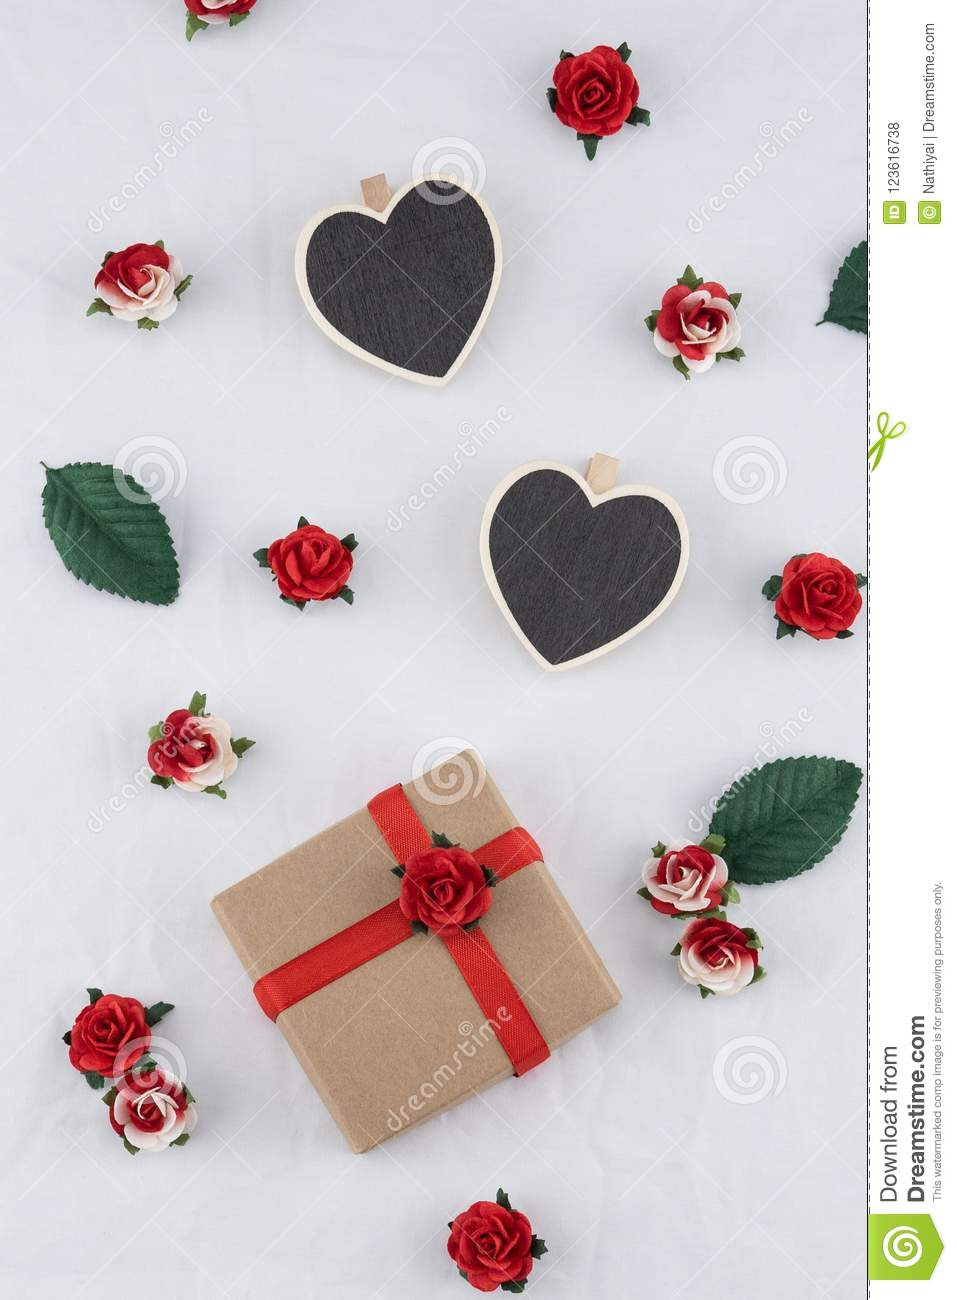 Brown gift box and tiny heart blackboard stock photo image of brown gift box and tiny heart blackboard decorate with red rose paper flowers on white fabric mightylinksfo